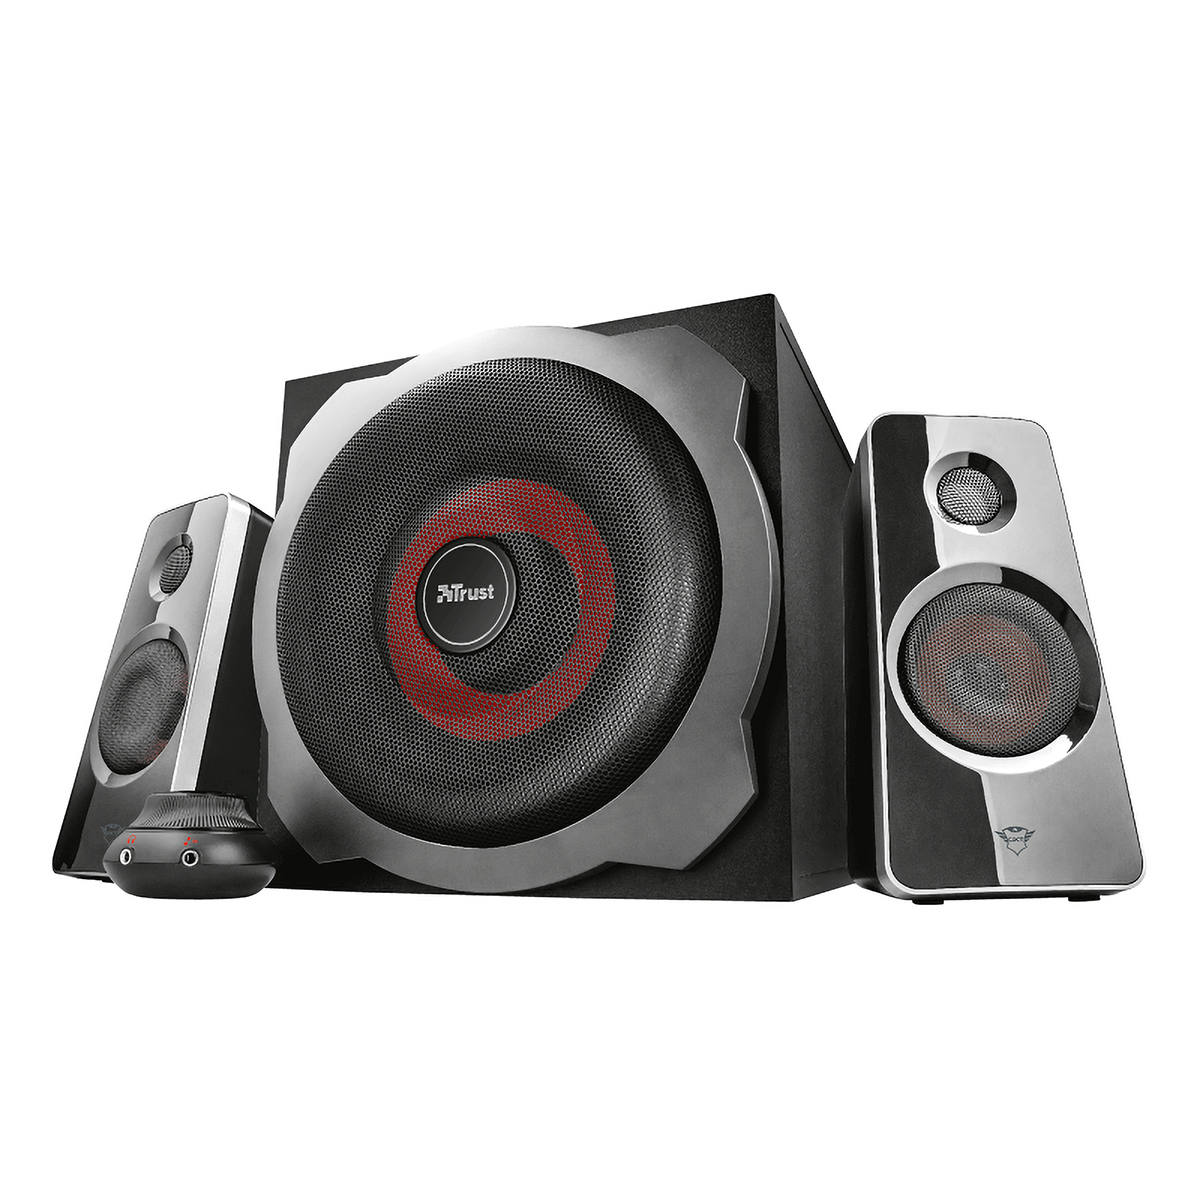 Caixa de Som 2.1 60W RMS Subwoofer Ultimate Bass Speaker Set Trust GXT 38 Tytan